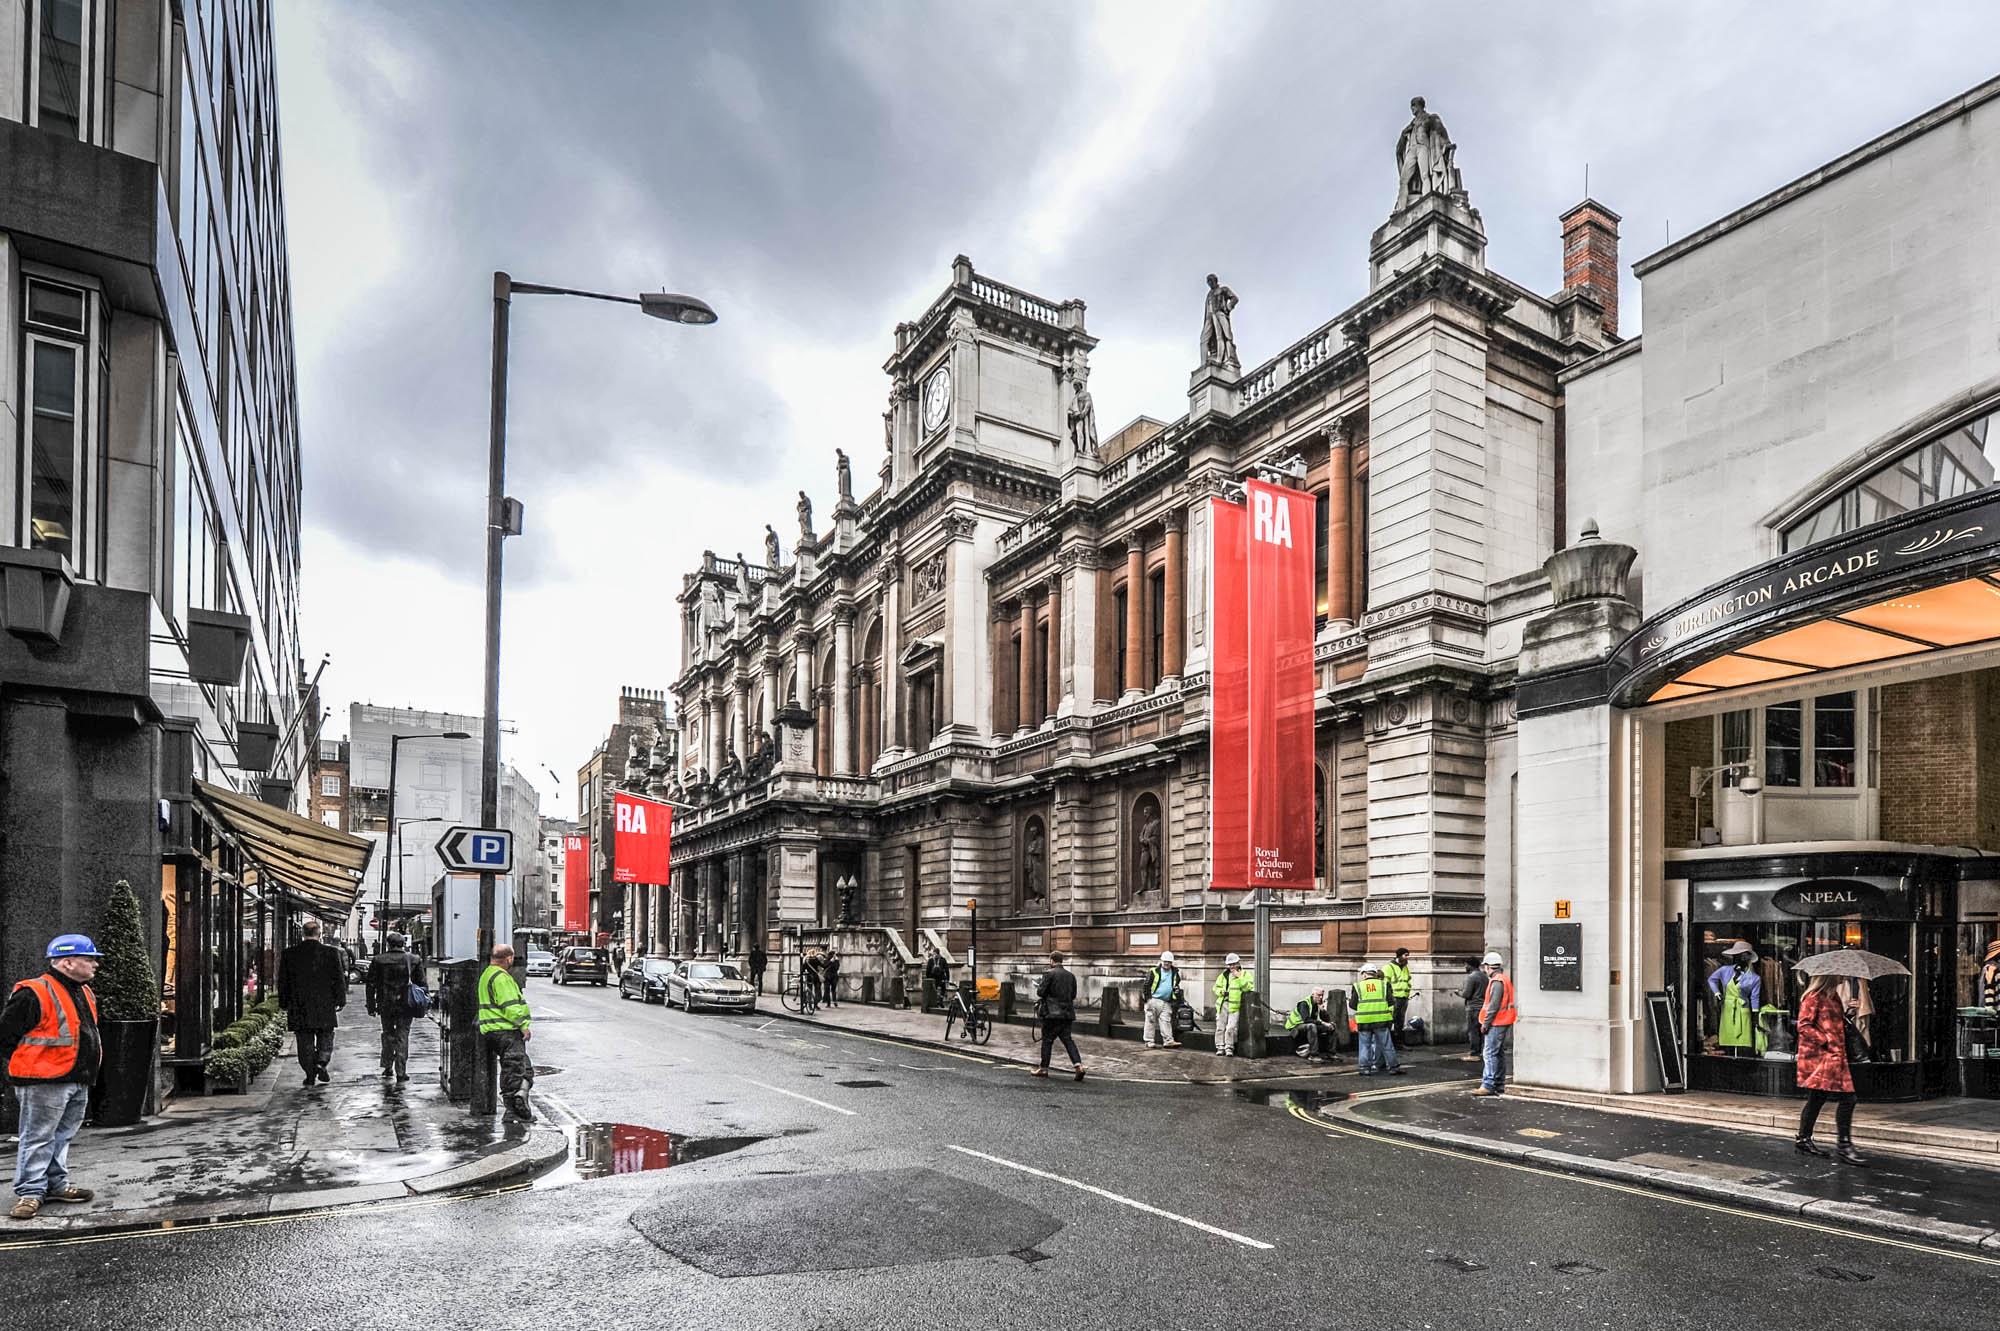 A photo of the exterior of the Royal Academy of Arts in burlington gardens